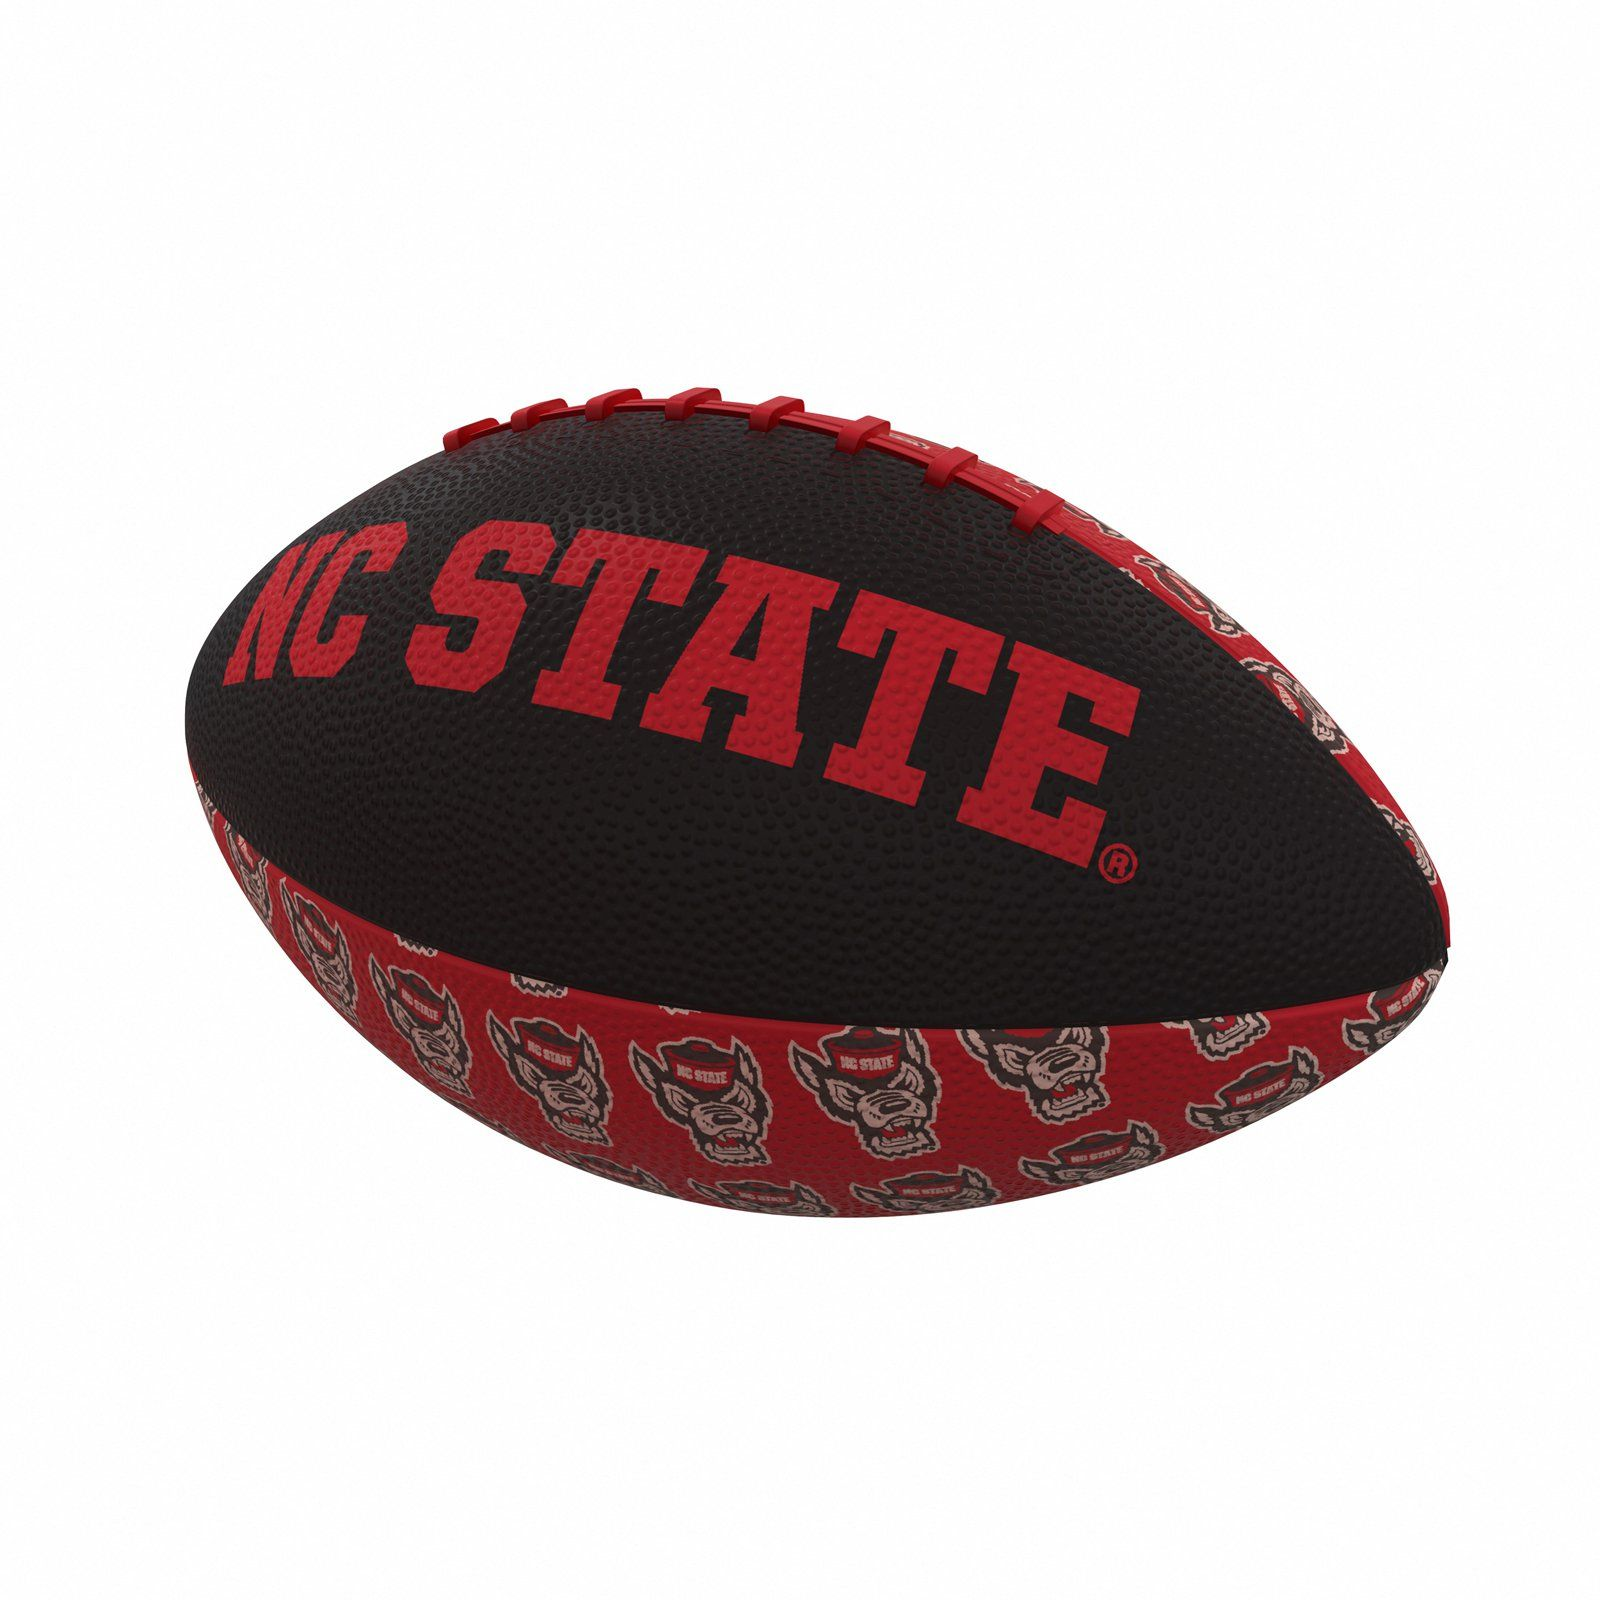 Logo Brands Ncaa Team Repeating Mini Size Rubber Football In 2019